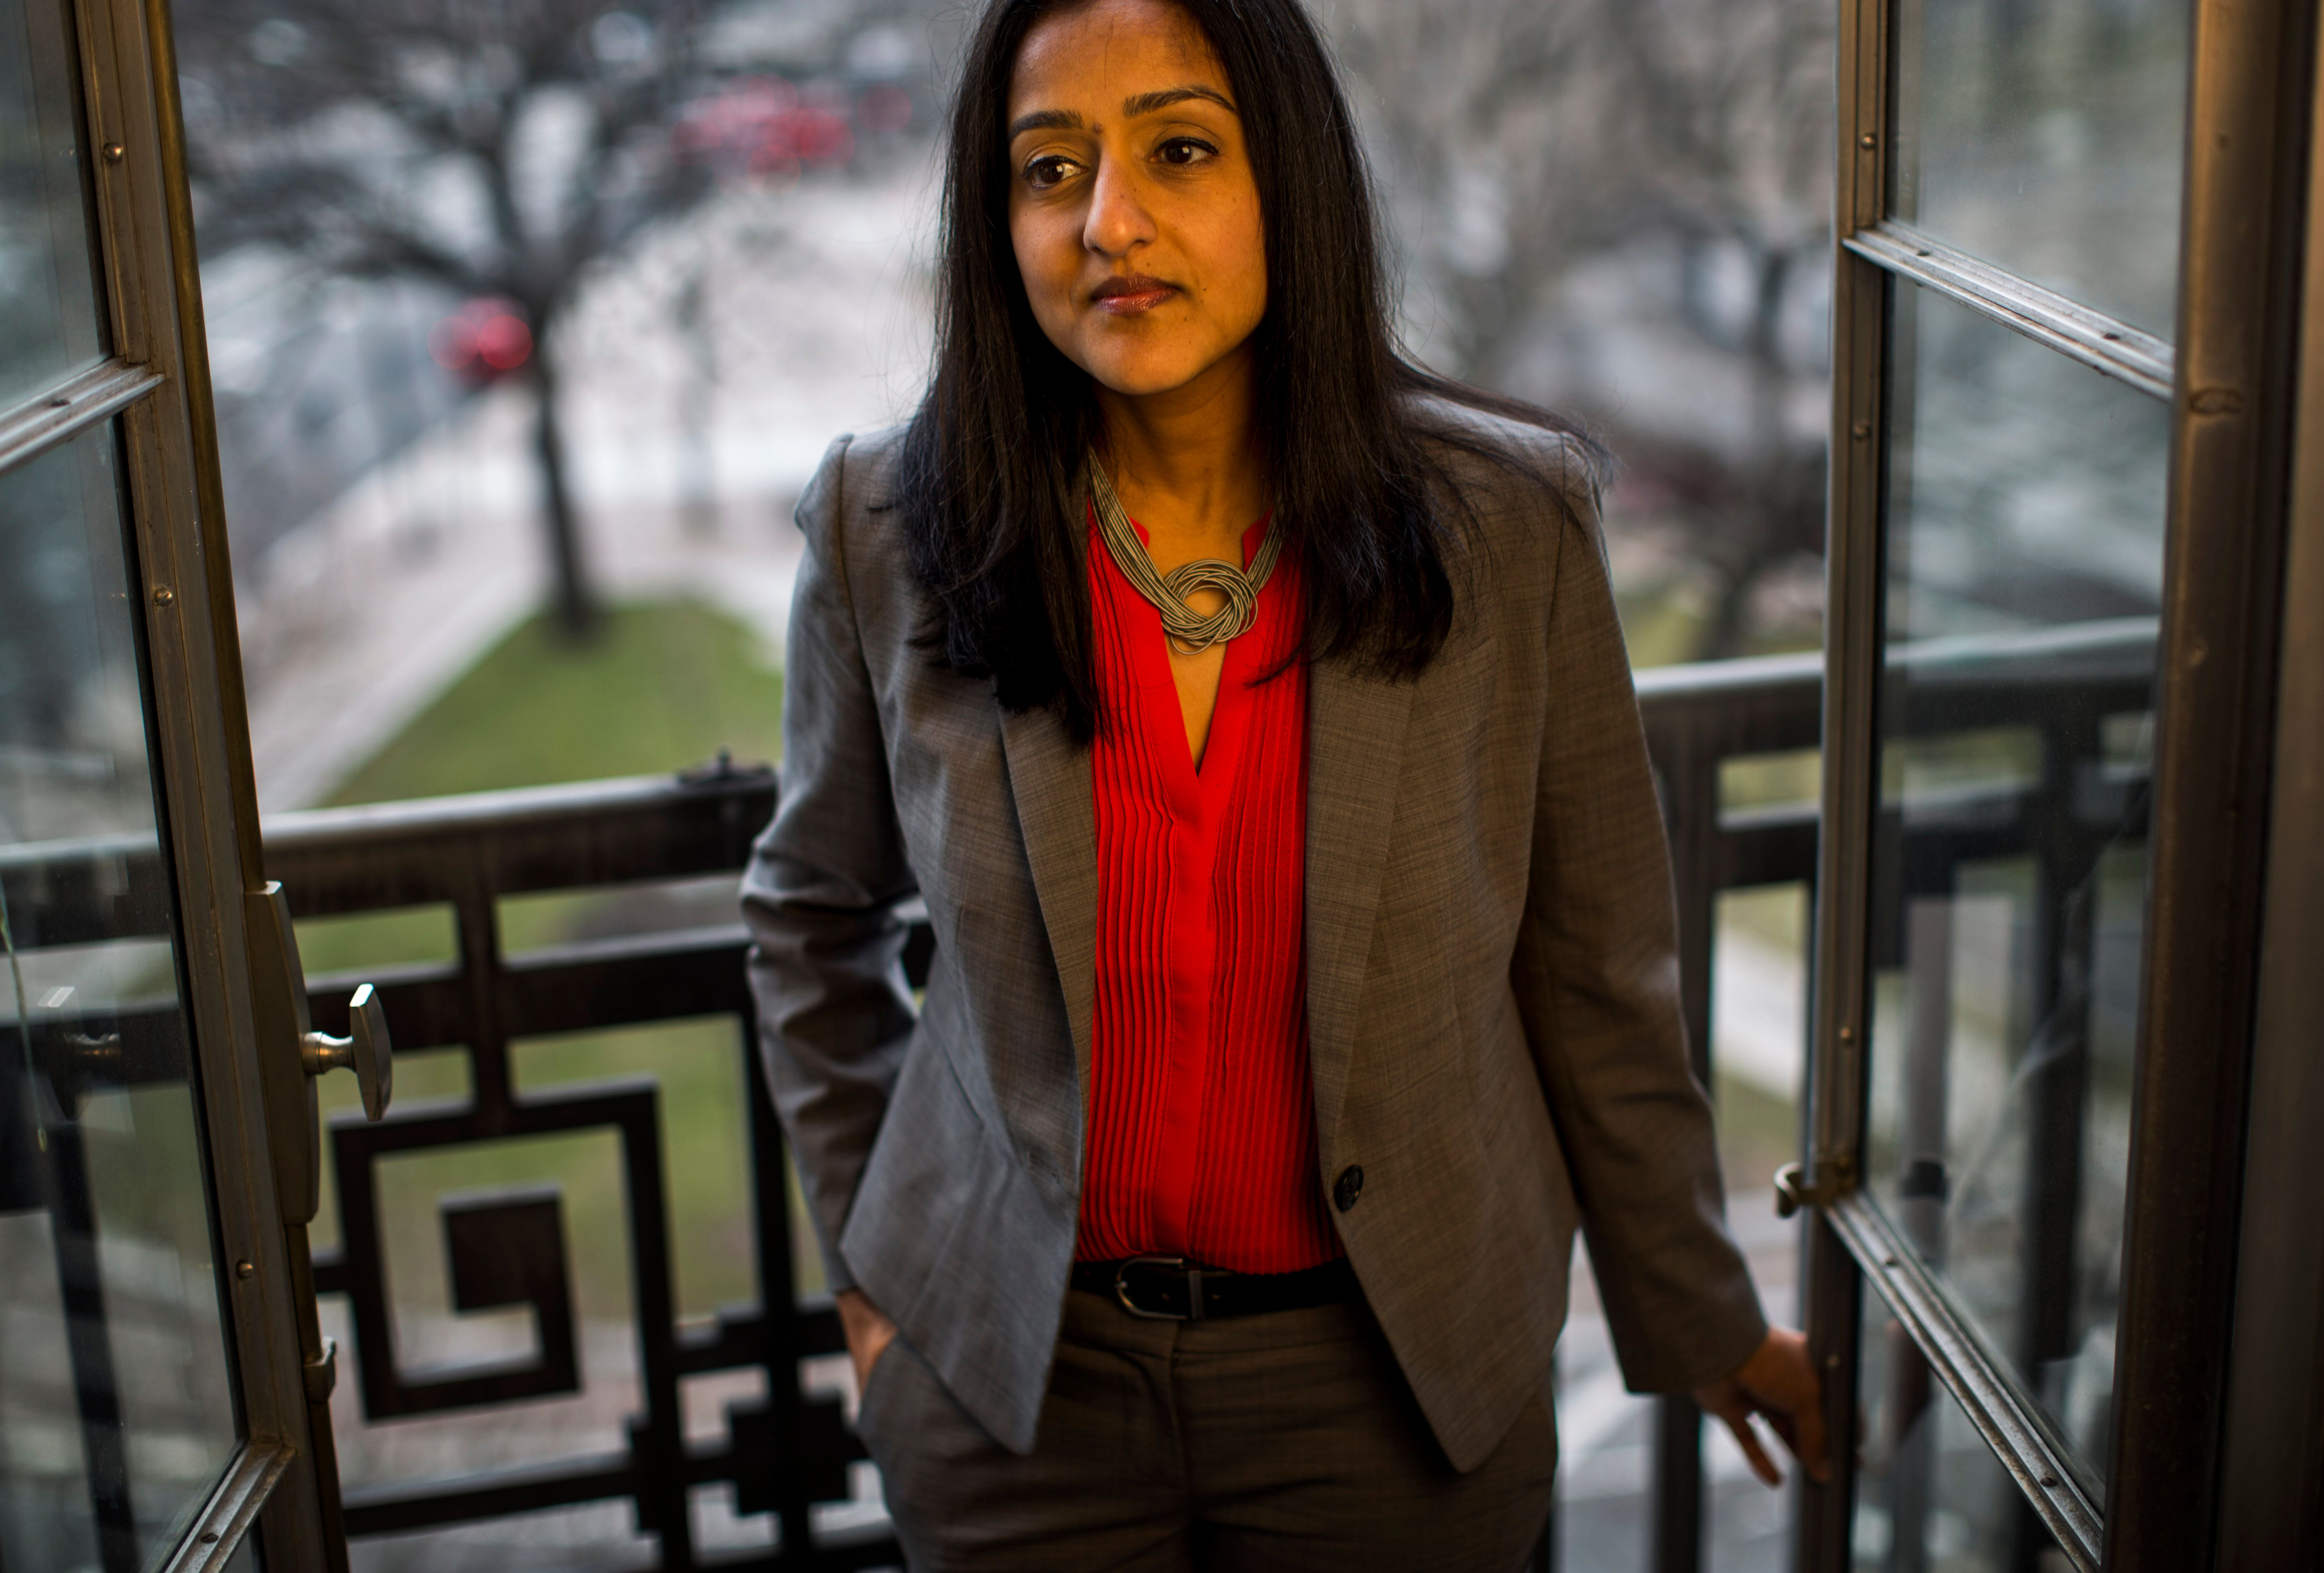 Vanita Gupta became head of the Civil Rights Division soon after the protests in Ferguson, Missouri.